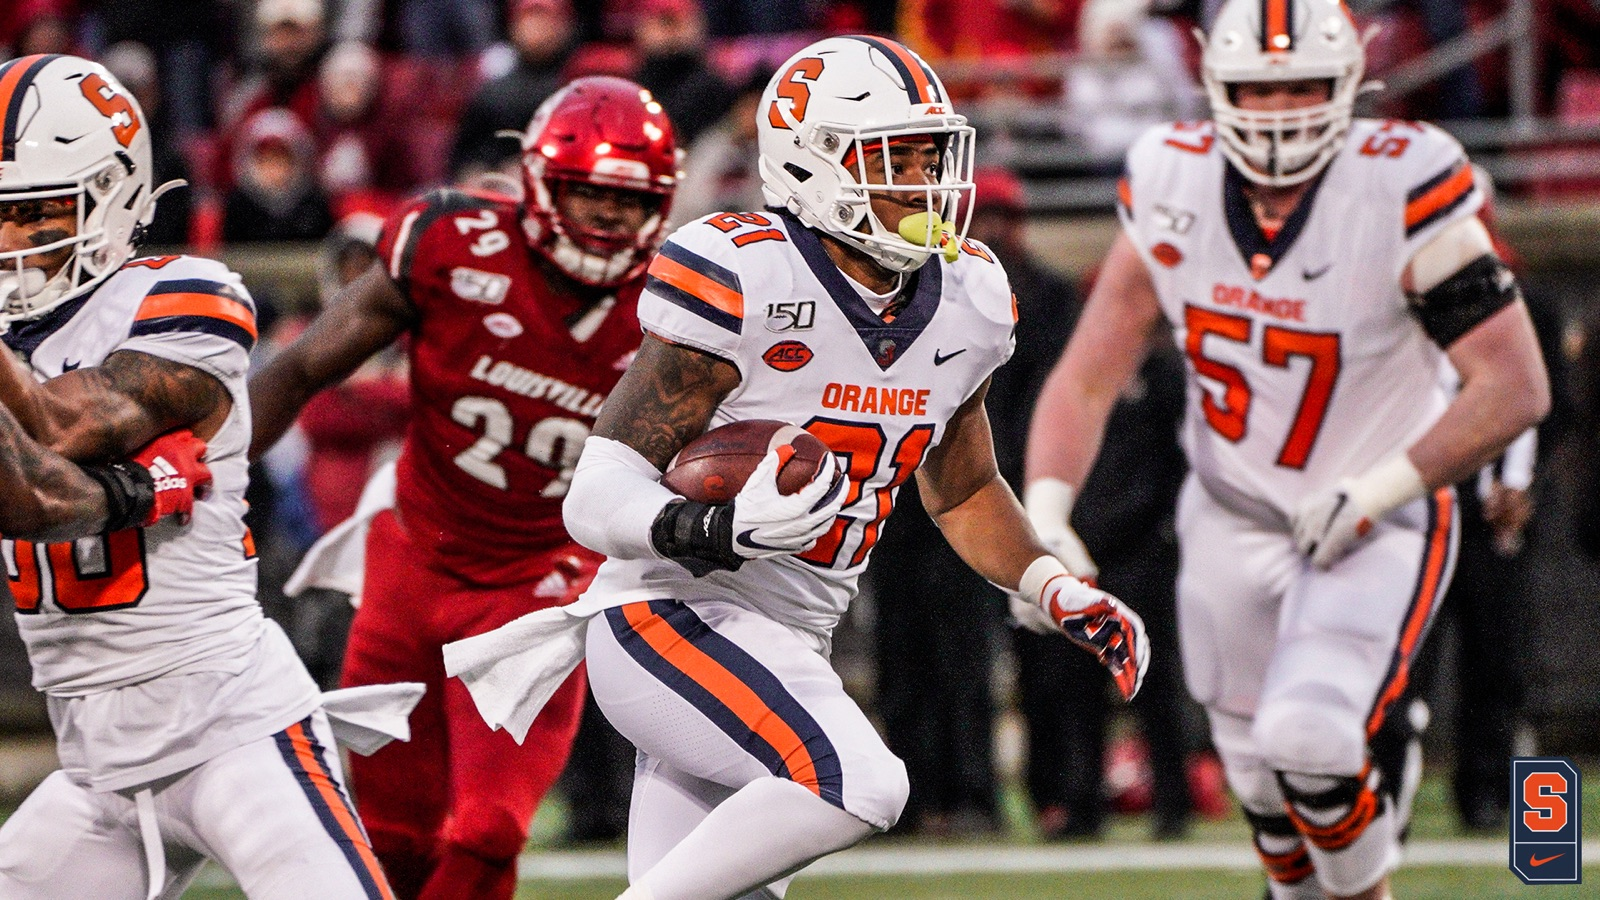 Syracuse falls to Louisville, 56-34 (full coverage)